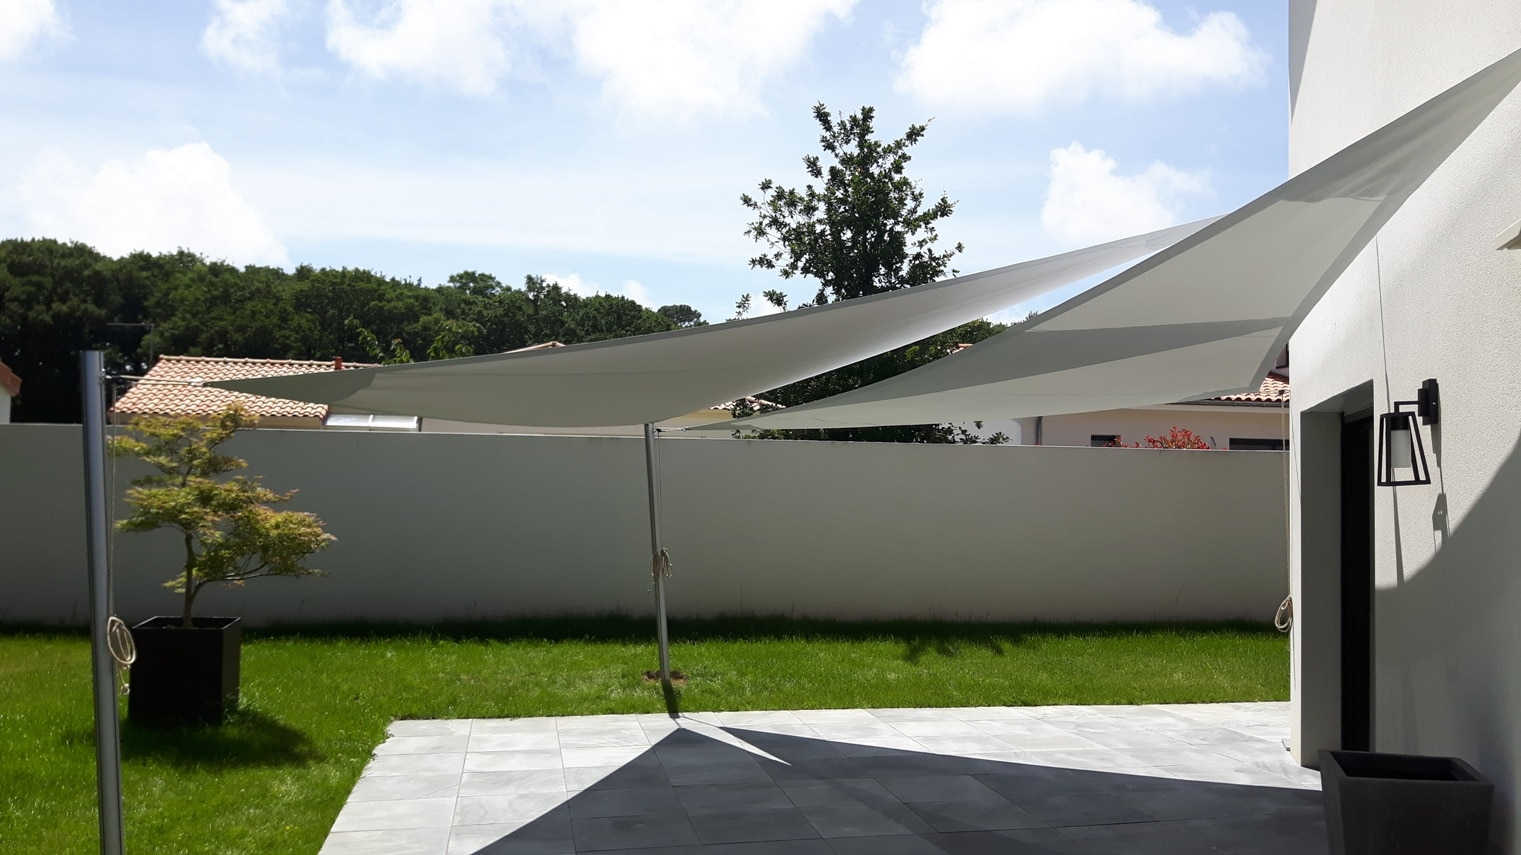 Voile D Ombrage Grand Vent voiles d'ombrage made in france | particuliers et professionnels